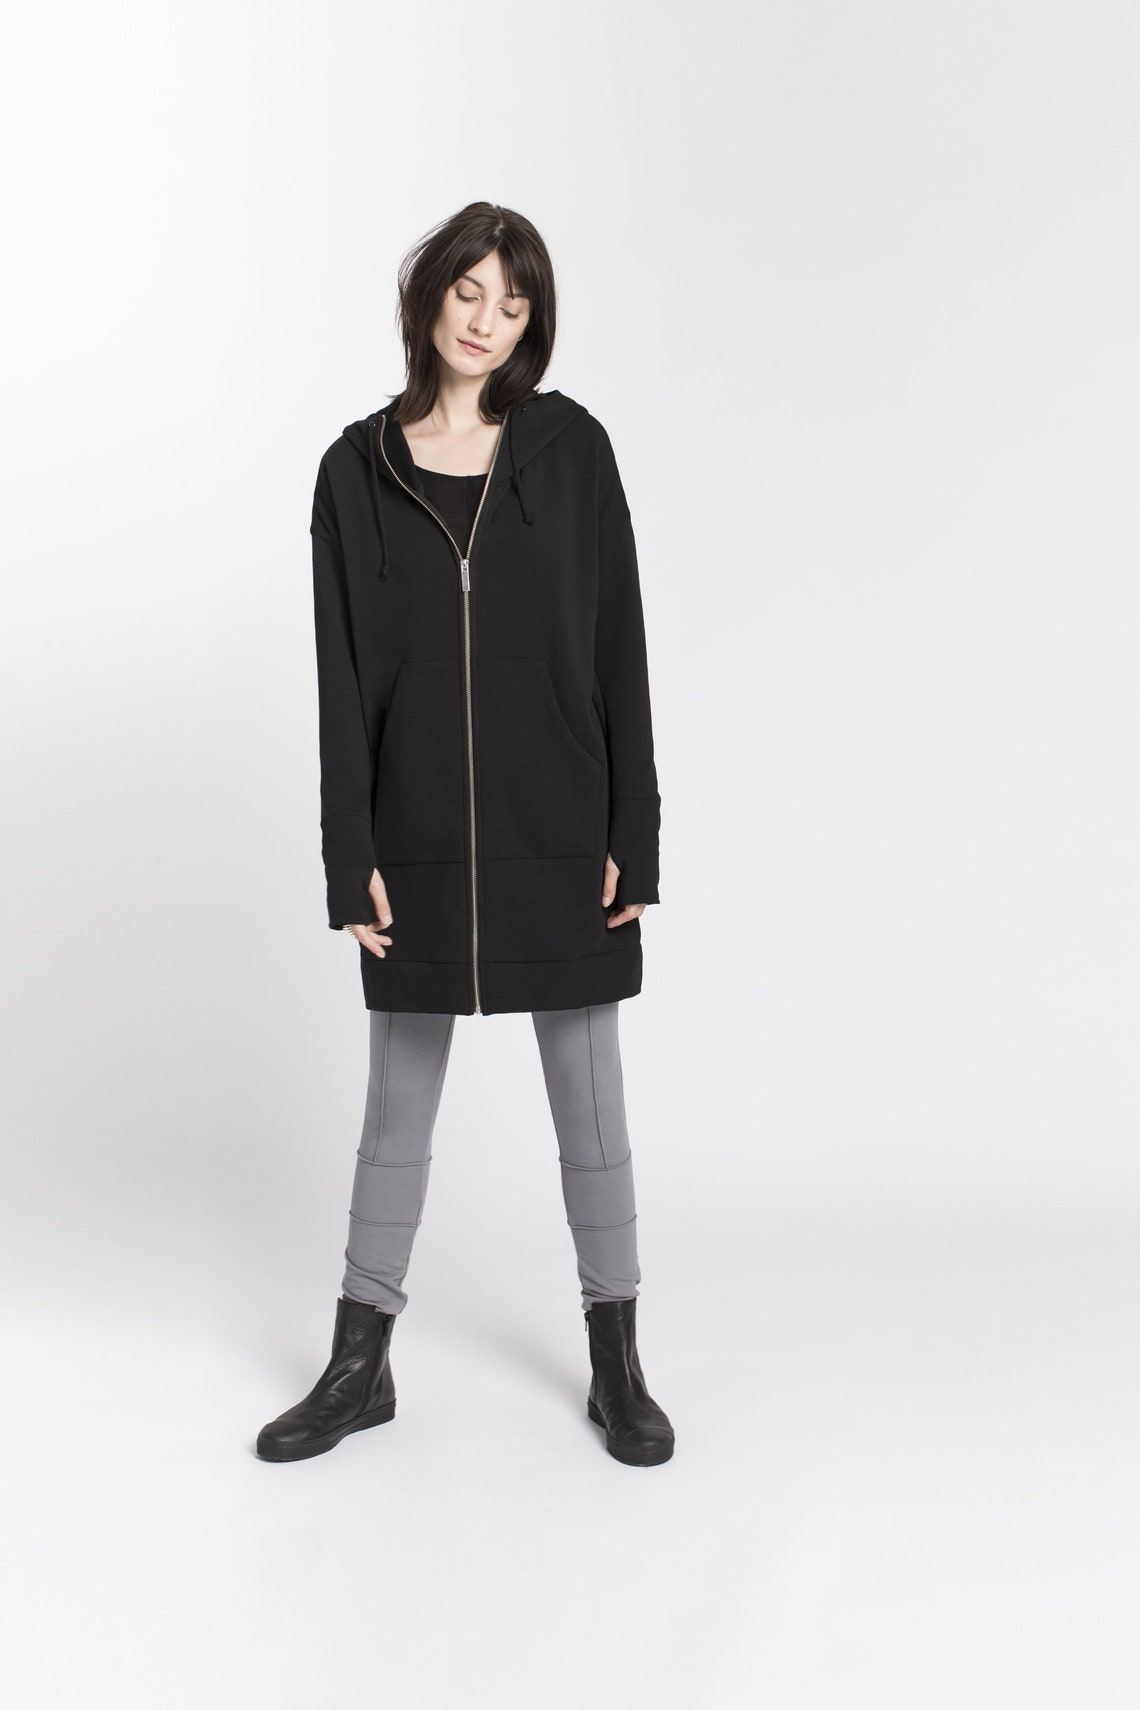 Zip-up Jacket, Pockets Hoodie Sweatshirt, Oversized Zippered, Remi Zippered Hoodie, Marcellamoda - Mc1378